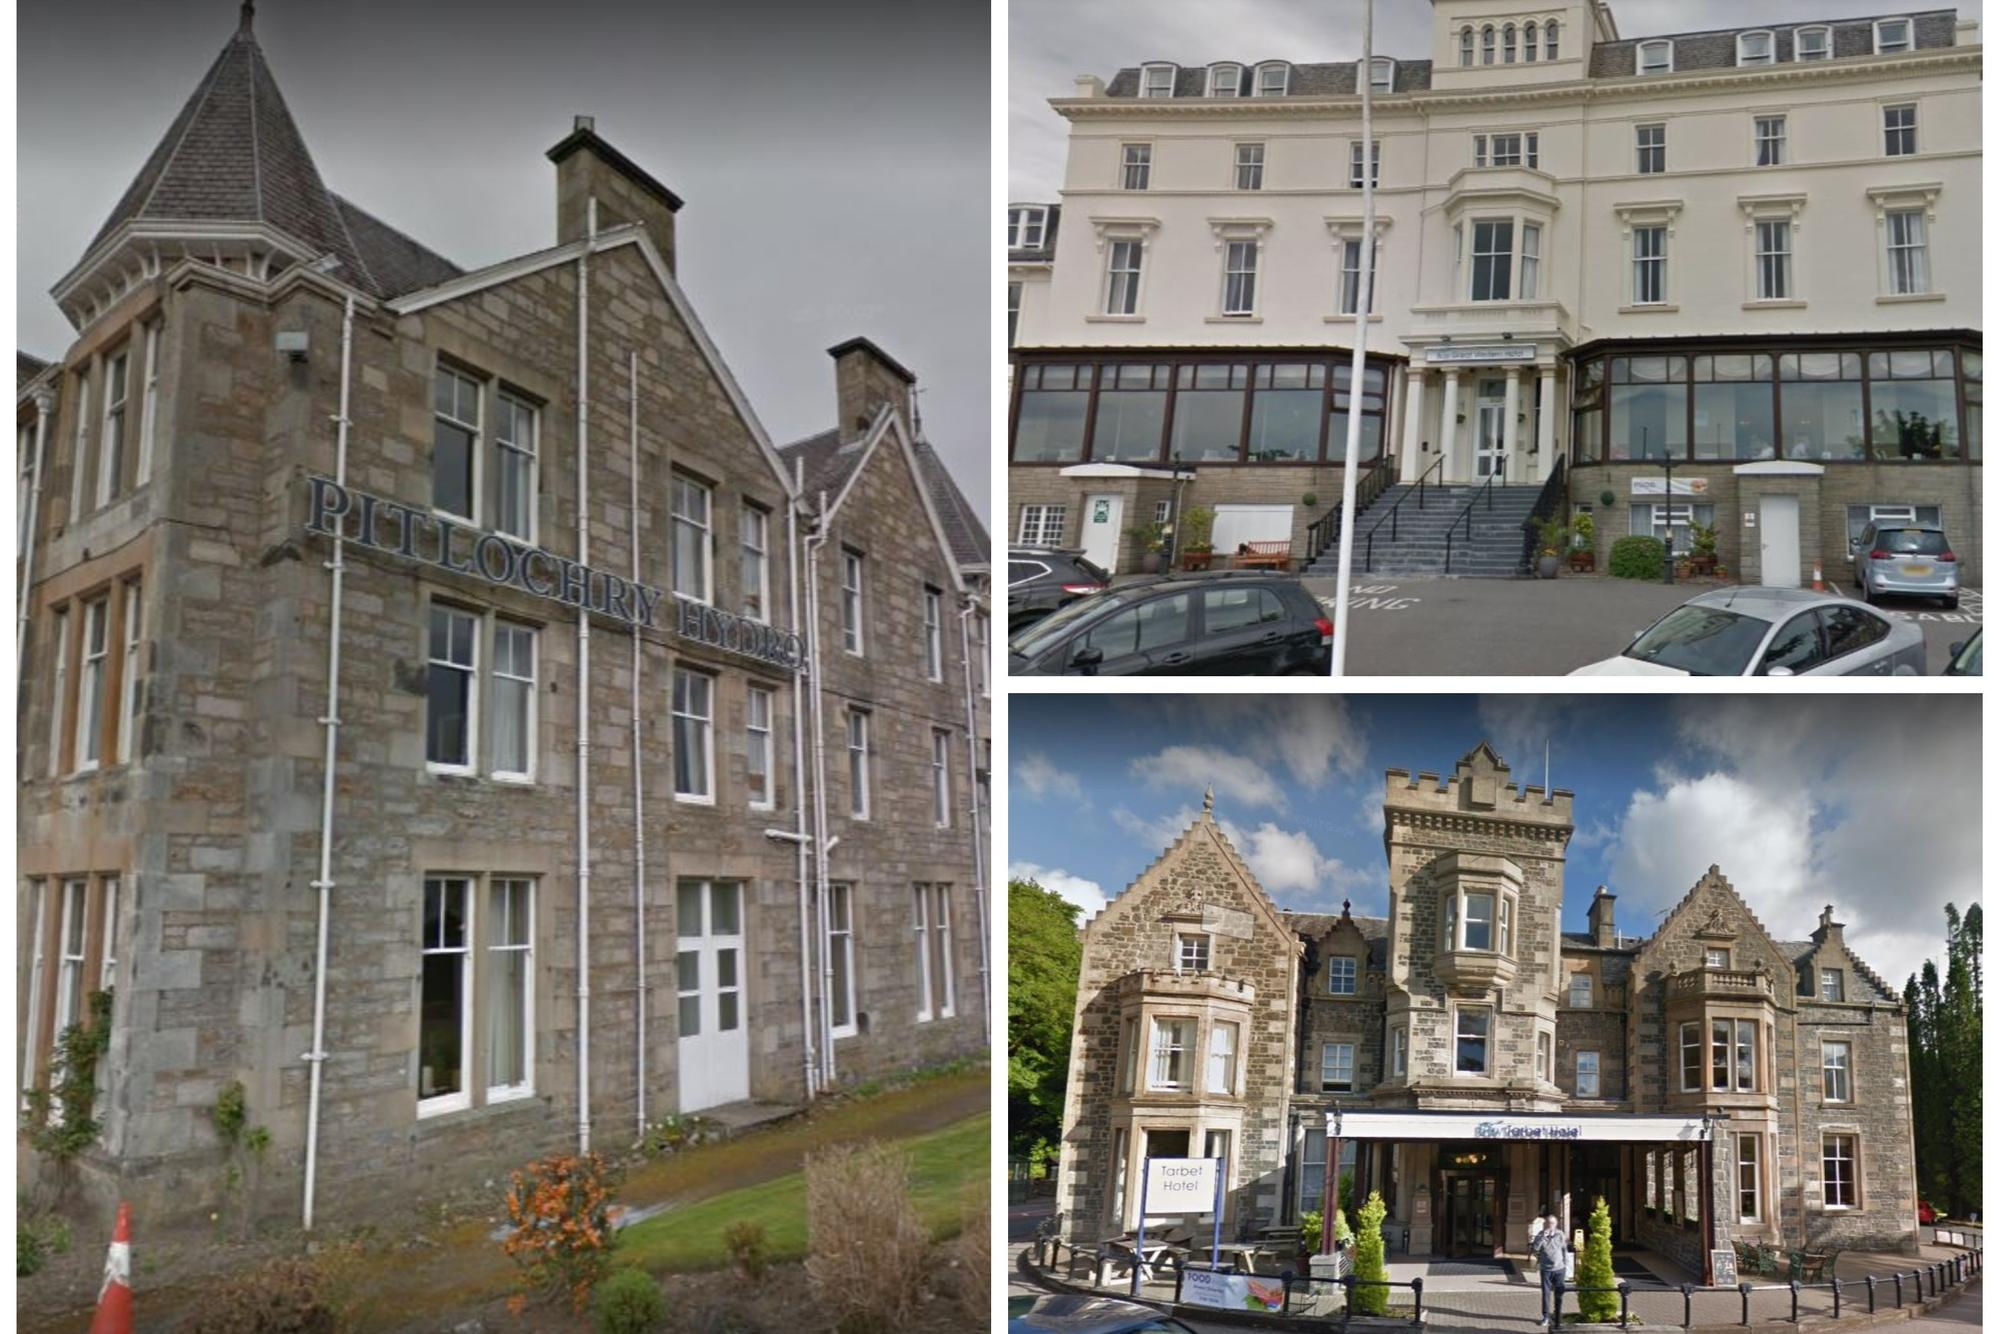 Seven Scottish hotels cease trading as major UK travel firm enters administration 'due to Covid-19'